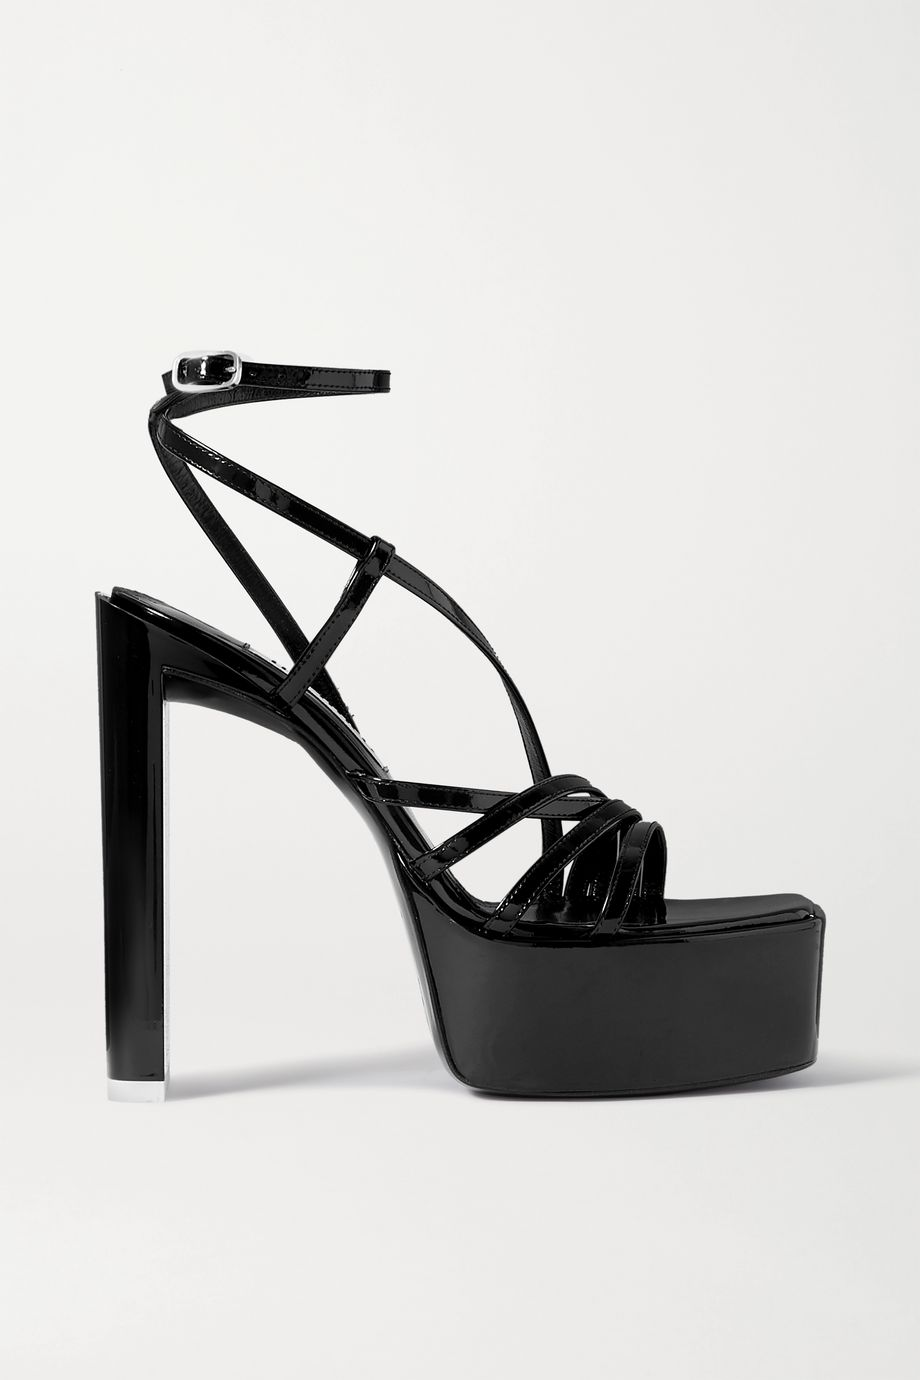 The Attico Venice patent-leather platform sandals